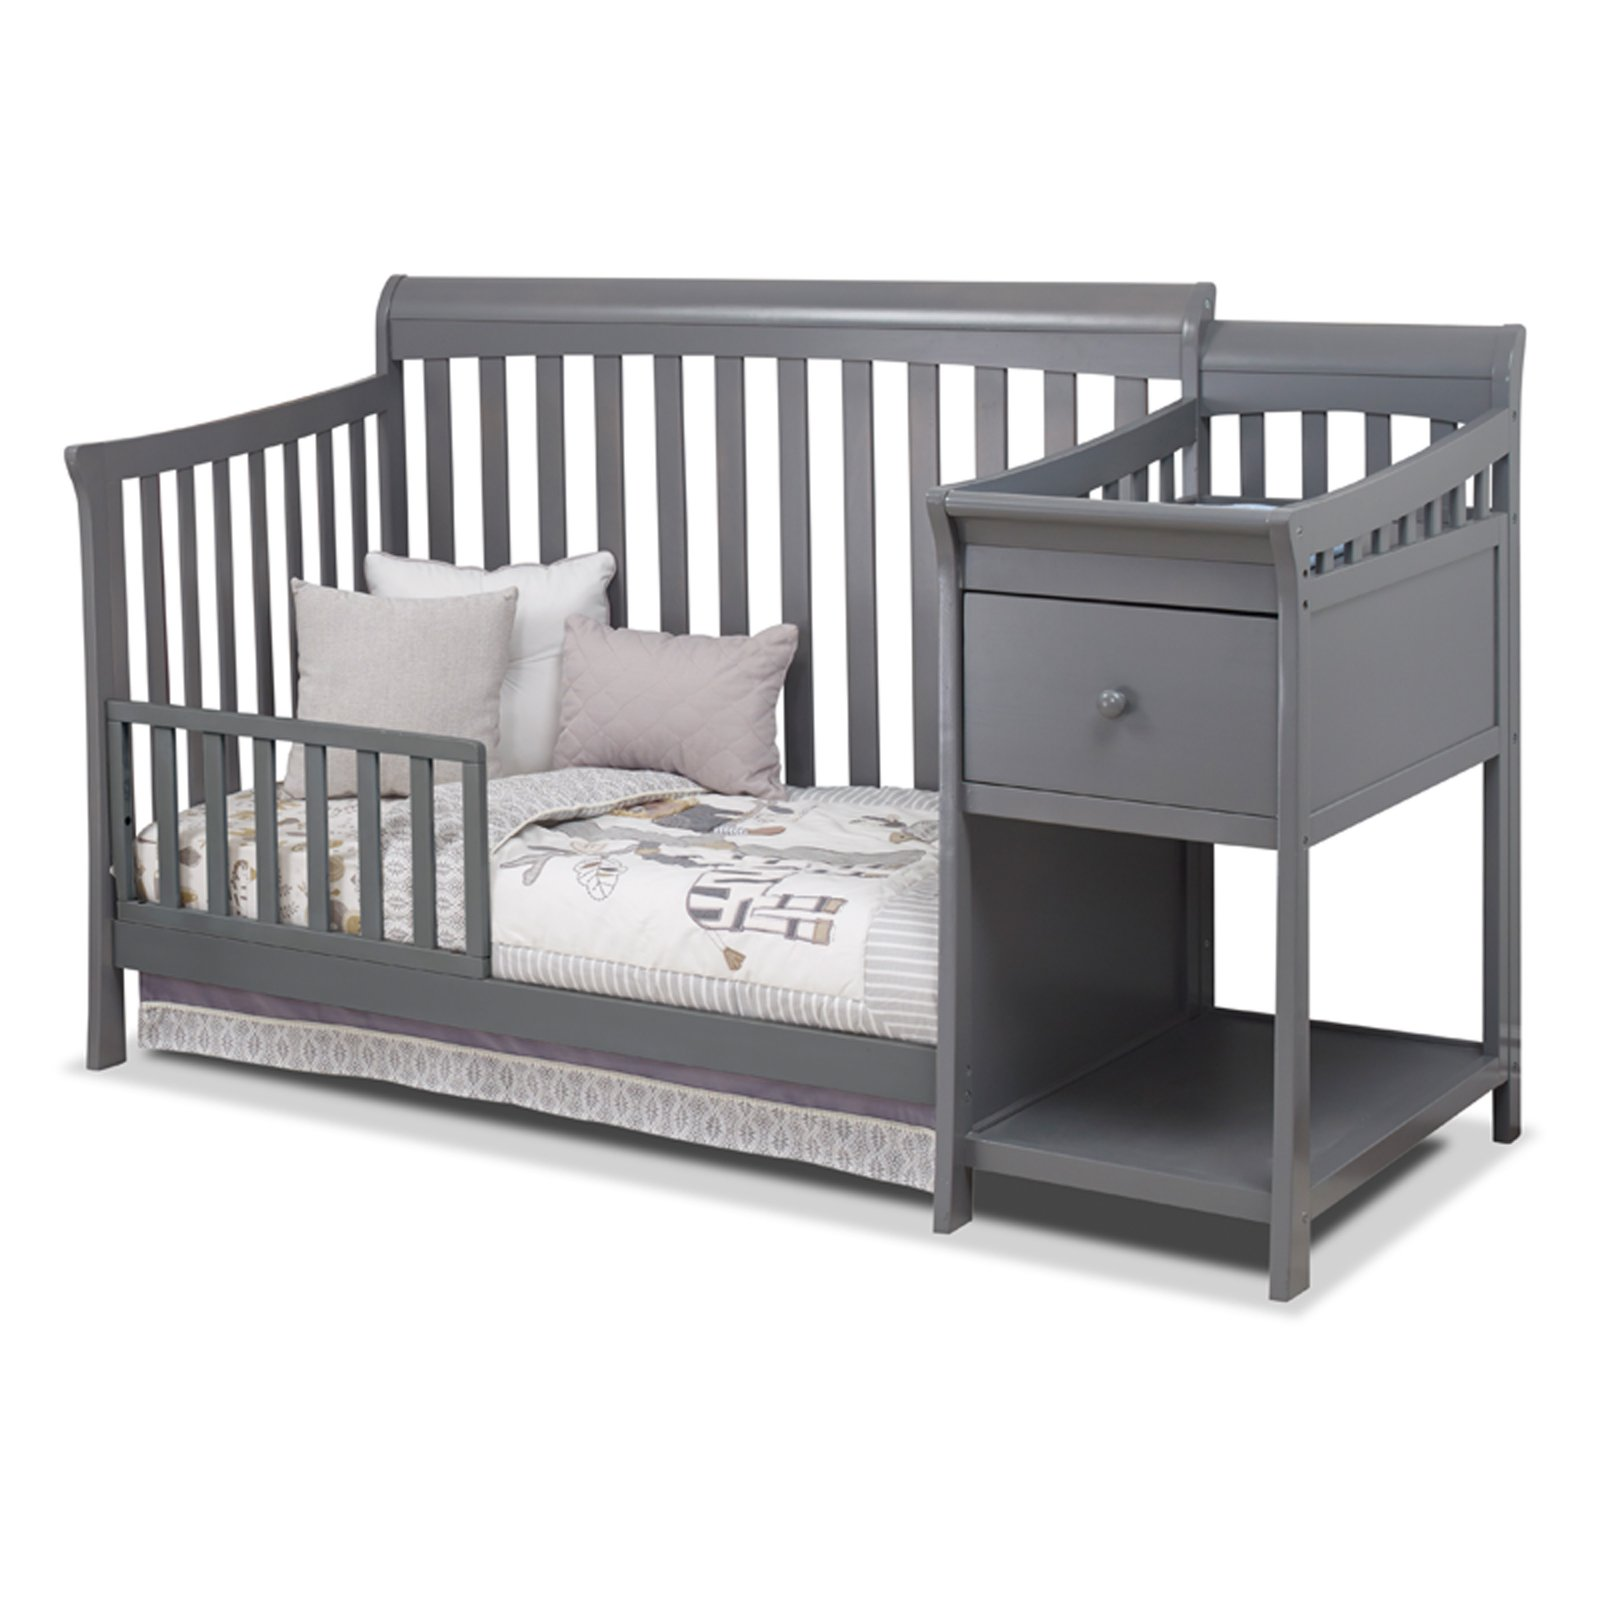 Sorelle Tuscany Elite Toddler Bed Rails